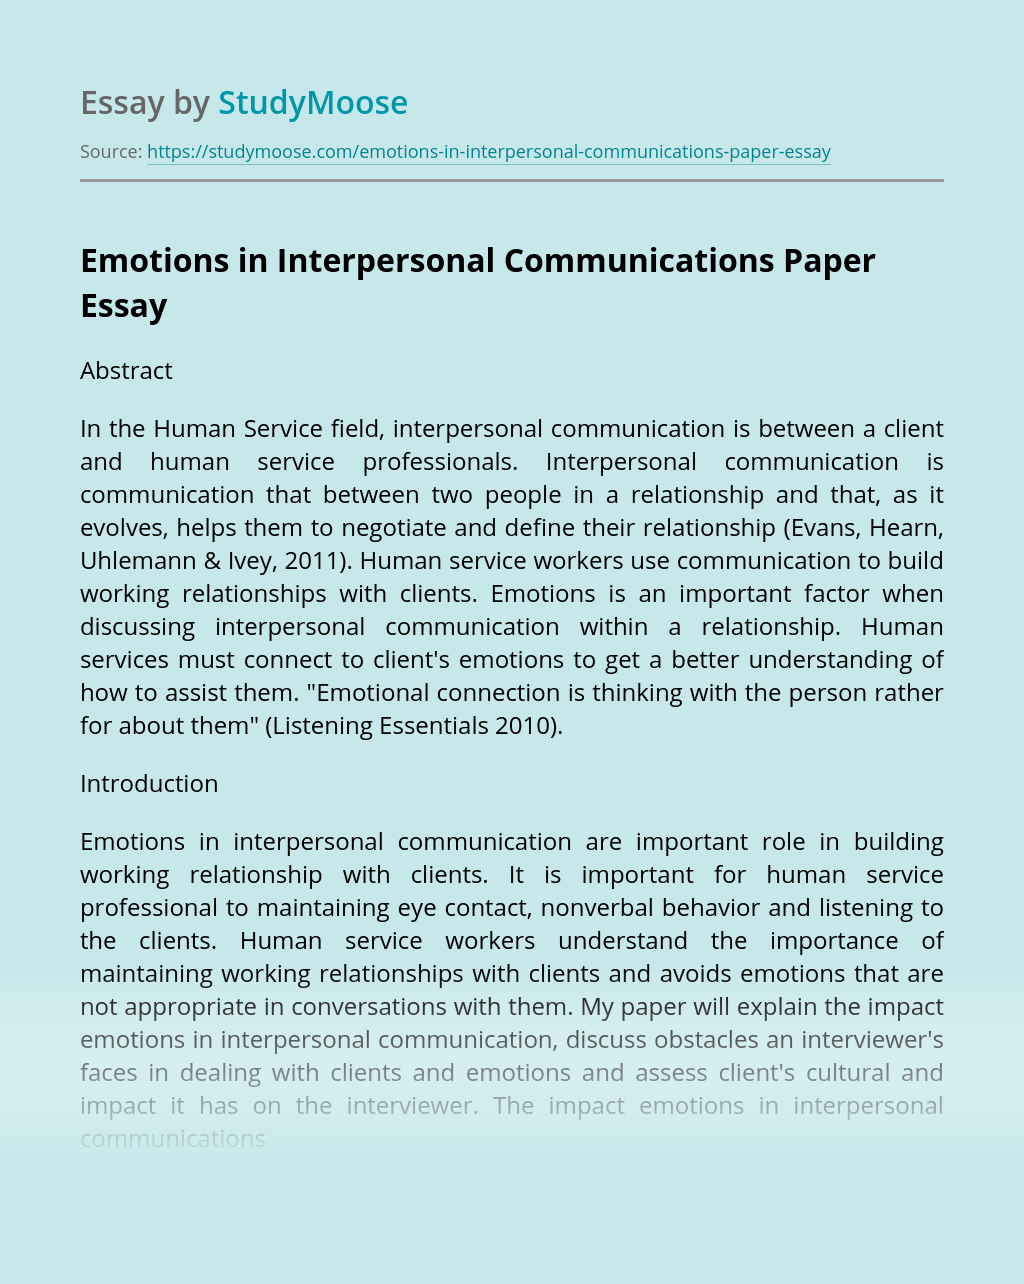 Emotions in Interpersonal Communications Paper